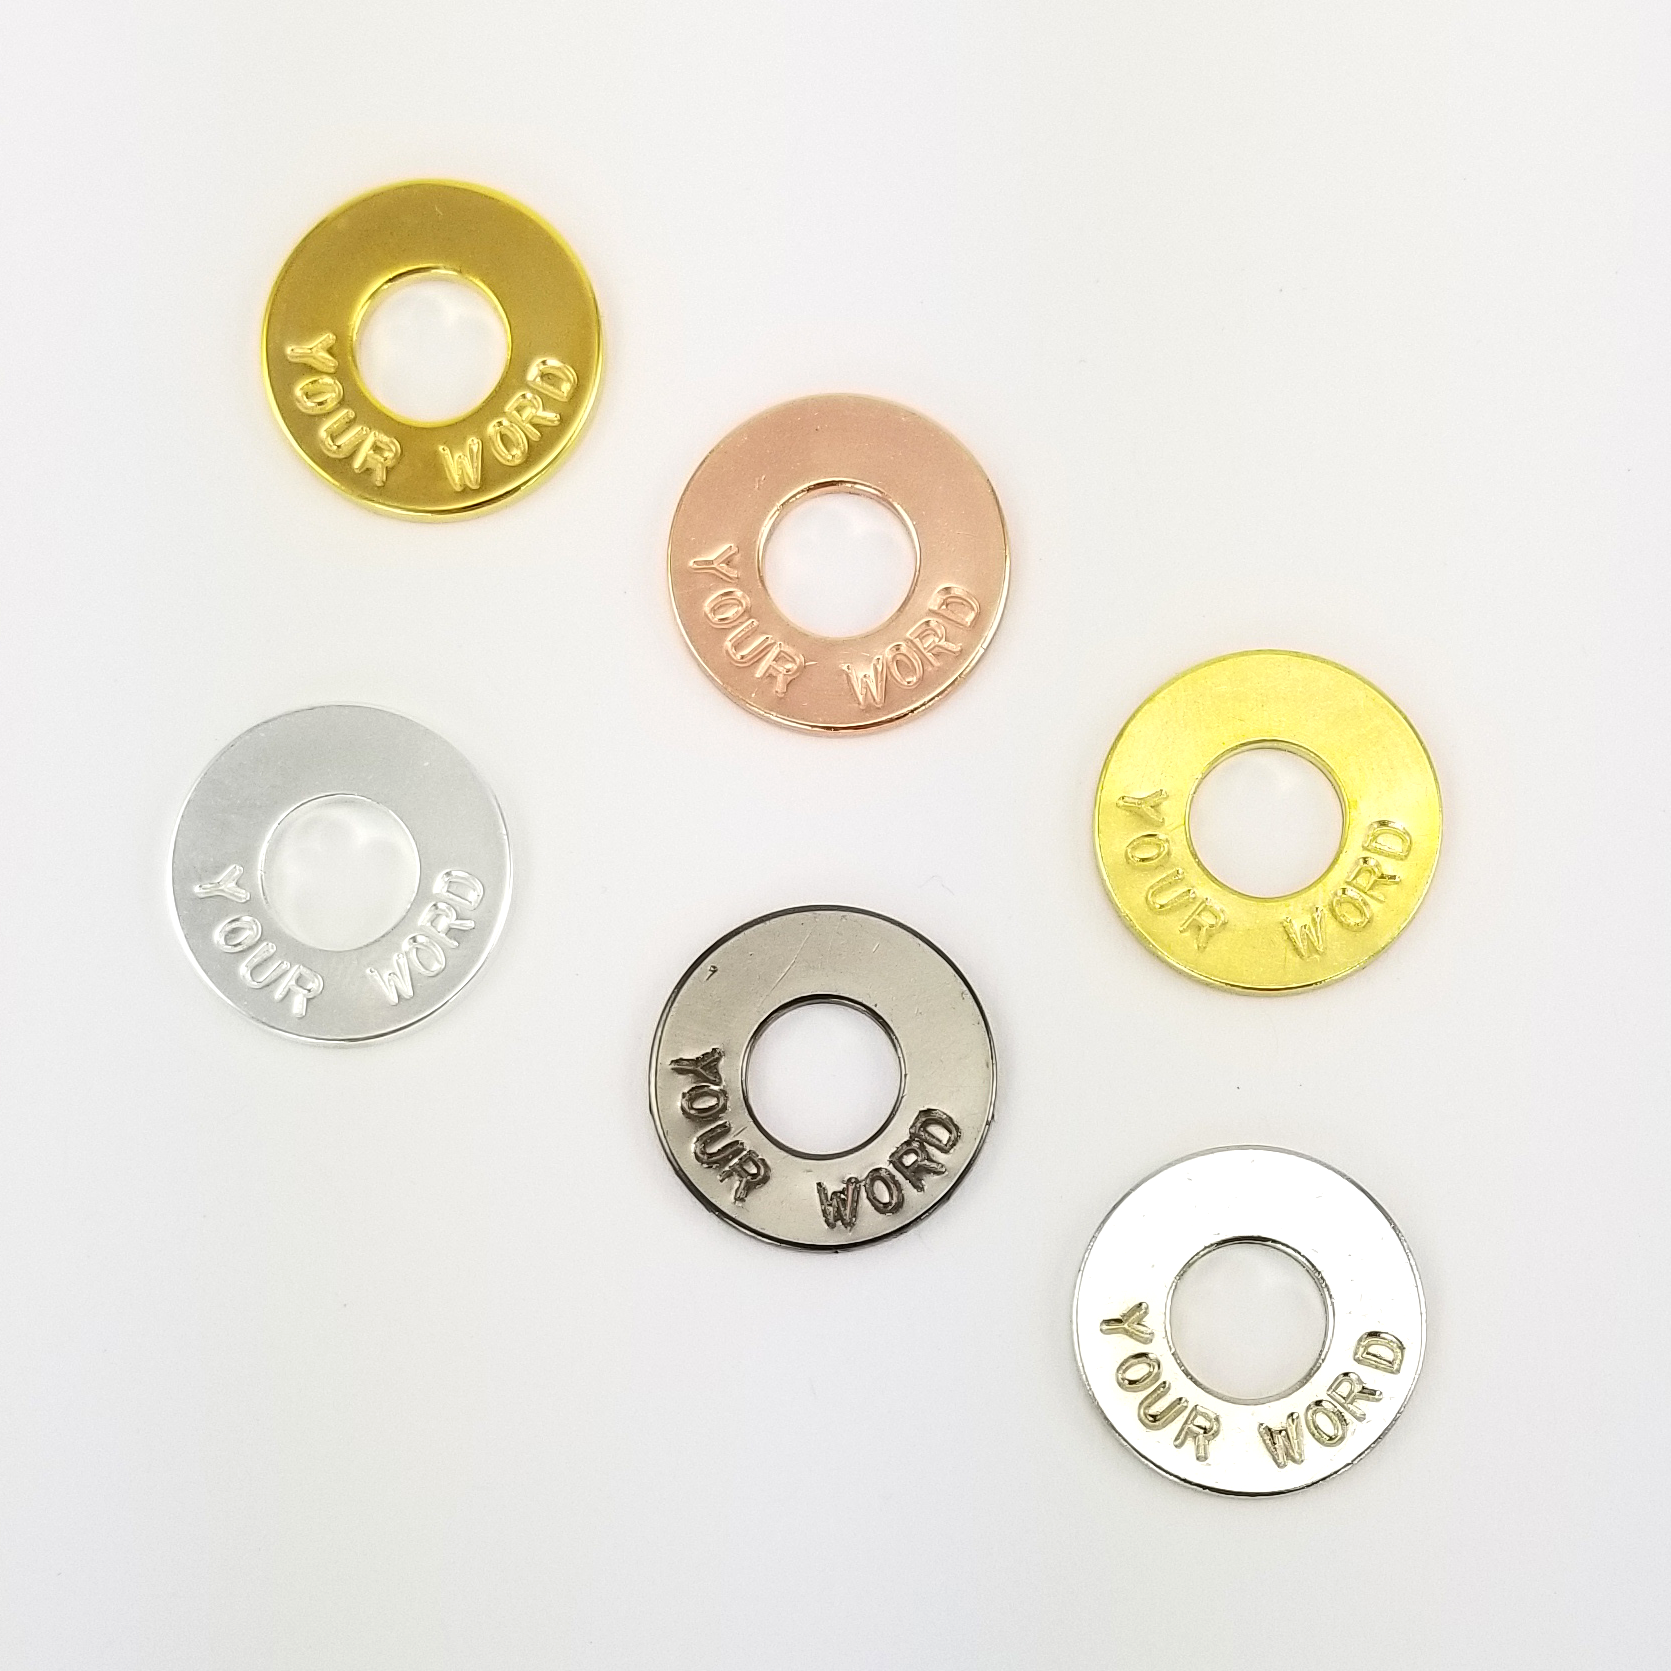 MyIntent Custom Tokens all colors in Brass, Nickel, Gold, Silver, Black Nickel, and Rose Gold